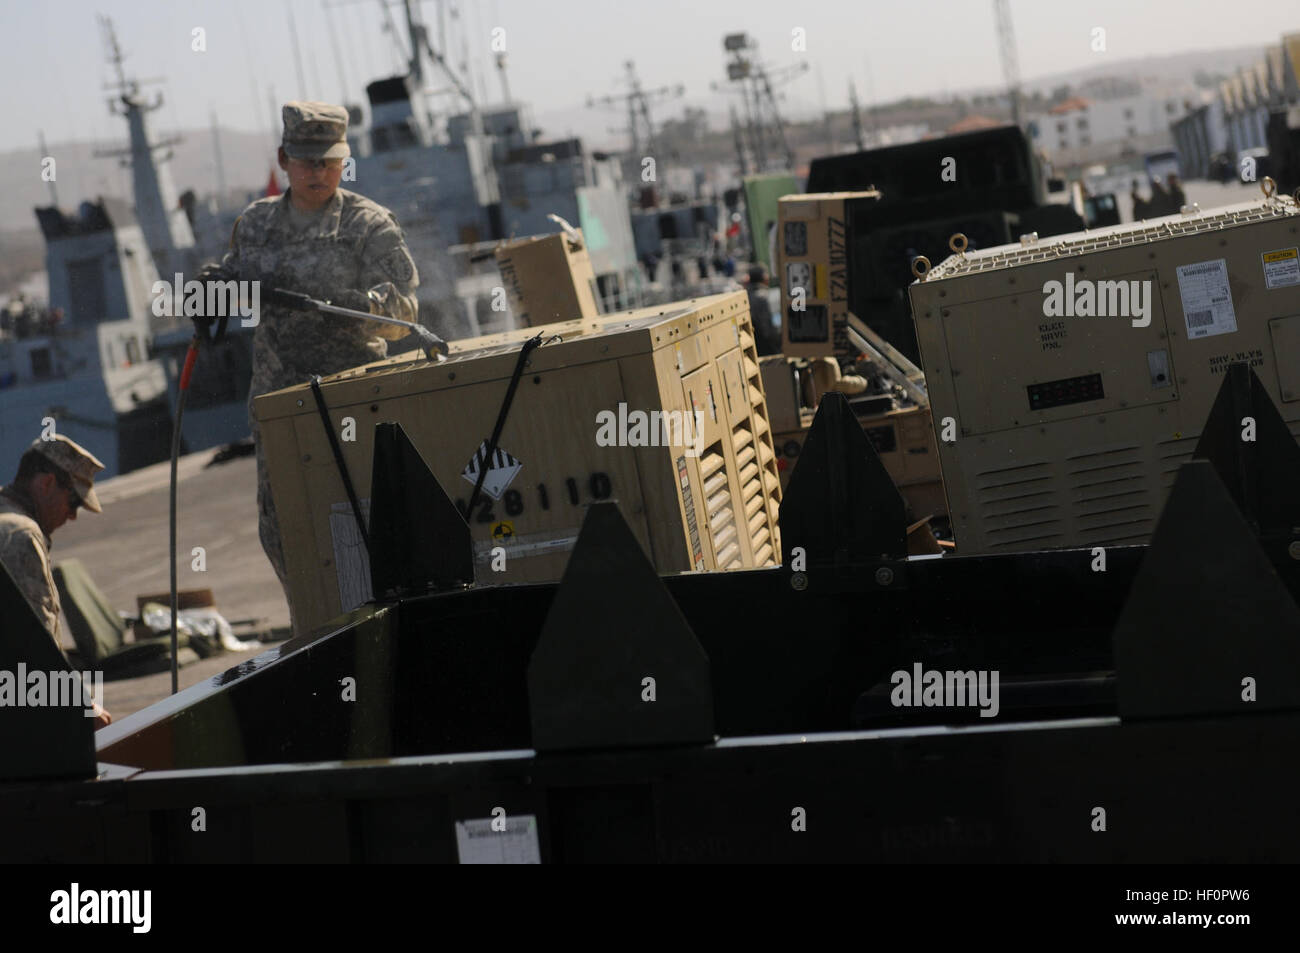 14th Marine Regiment High Resolution Stock Photography And Images Alamy